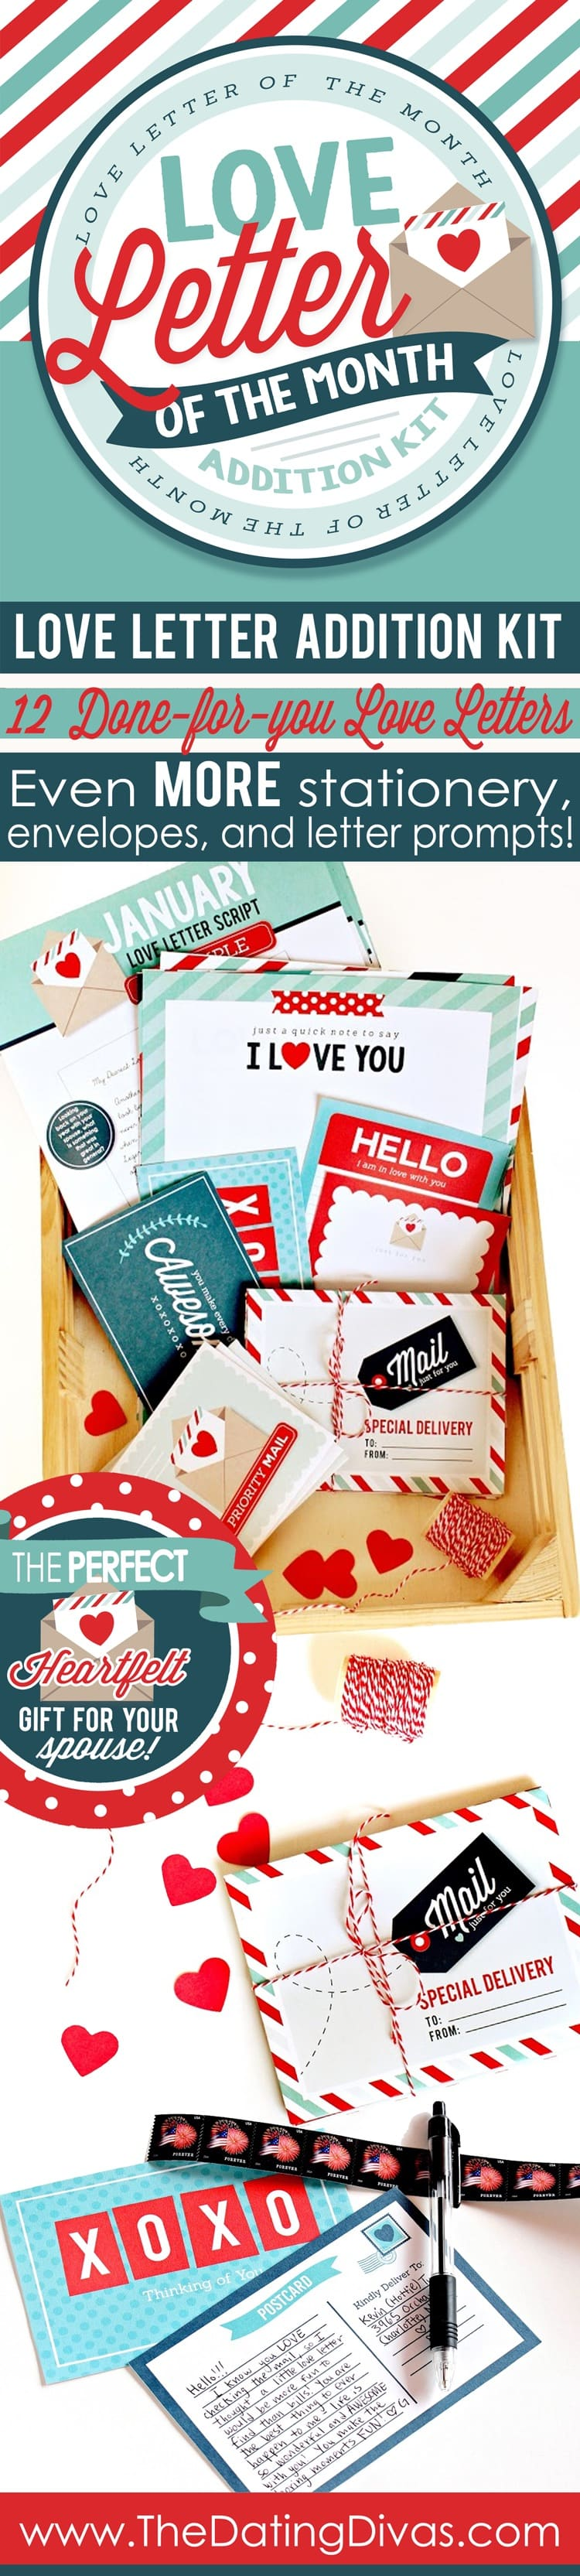 How to write the perfect love letter! Printable stationery, love letter scripts and more!